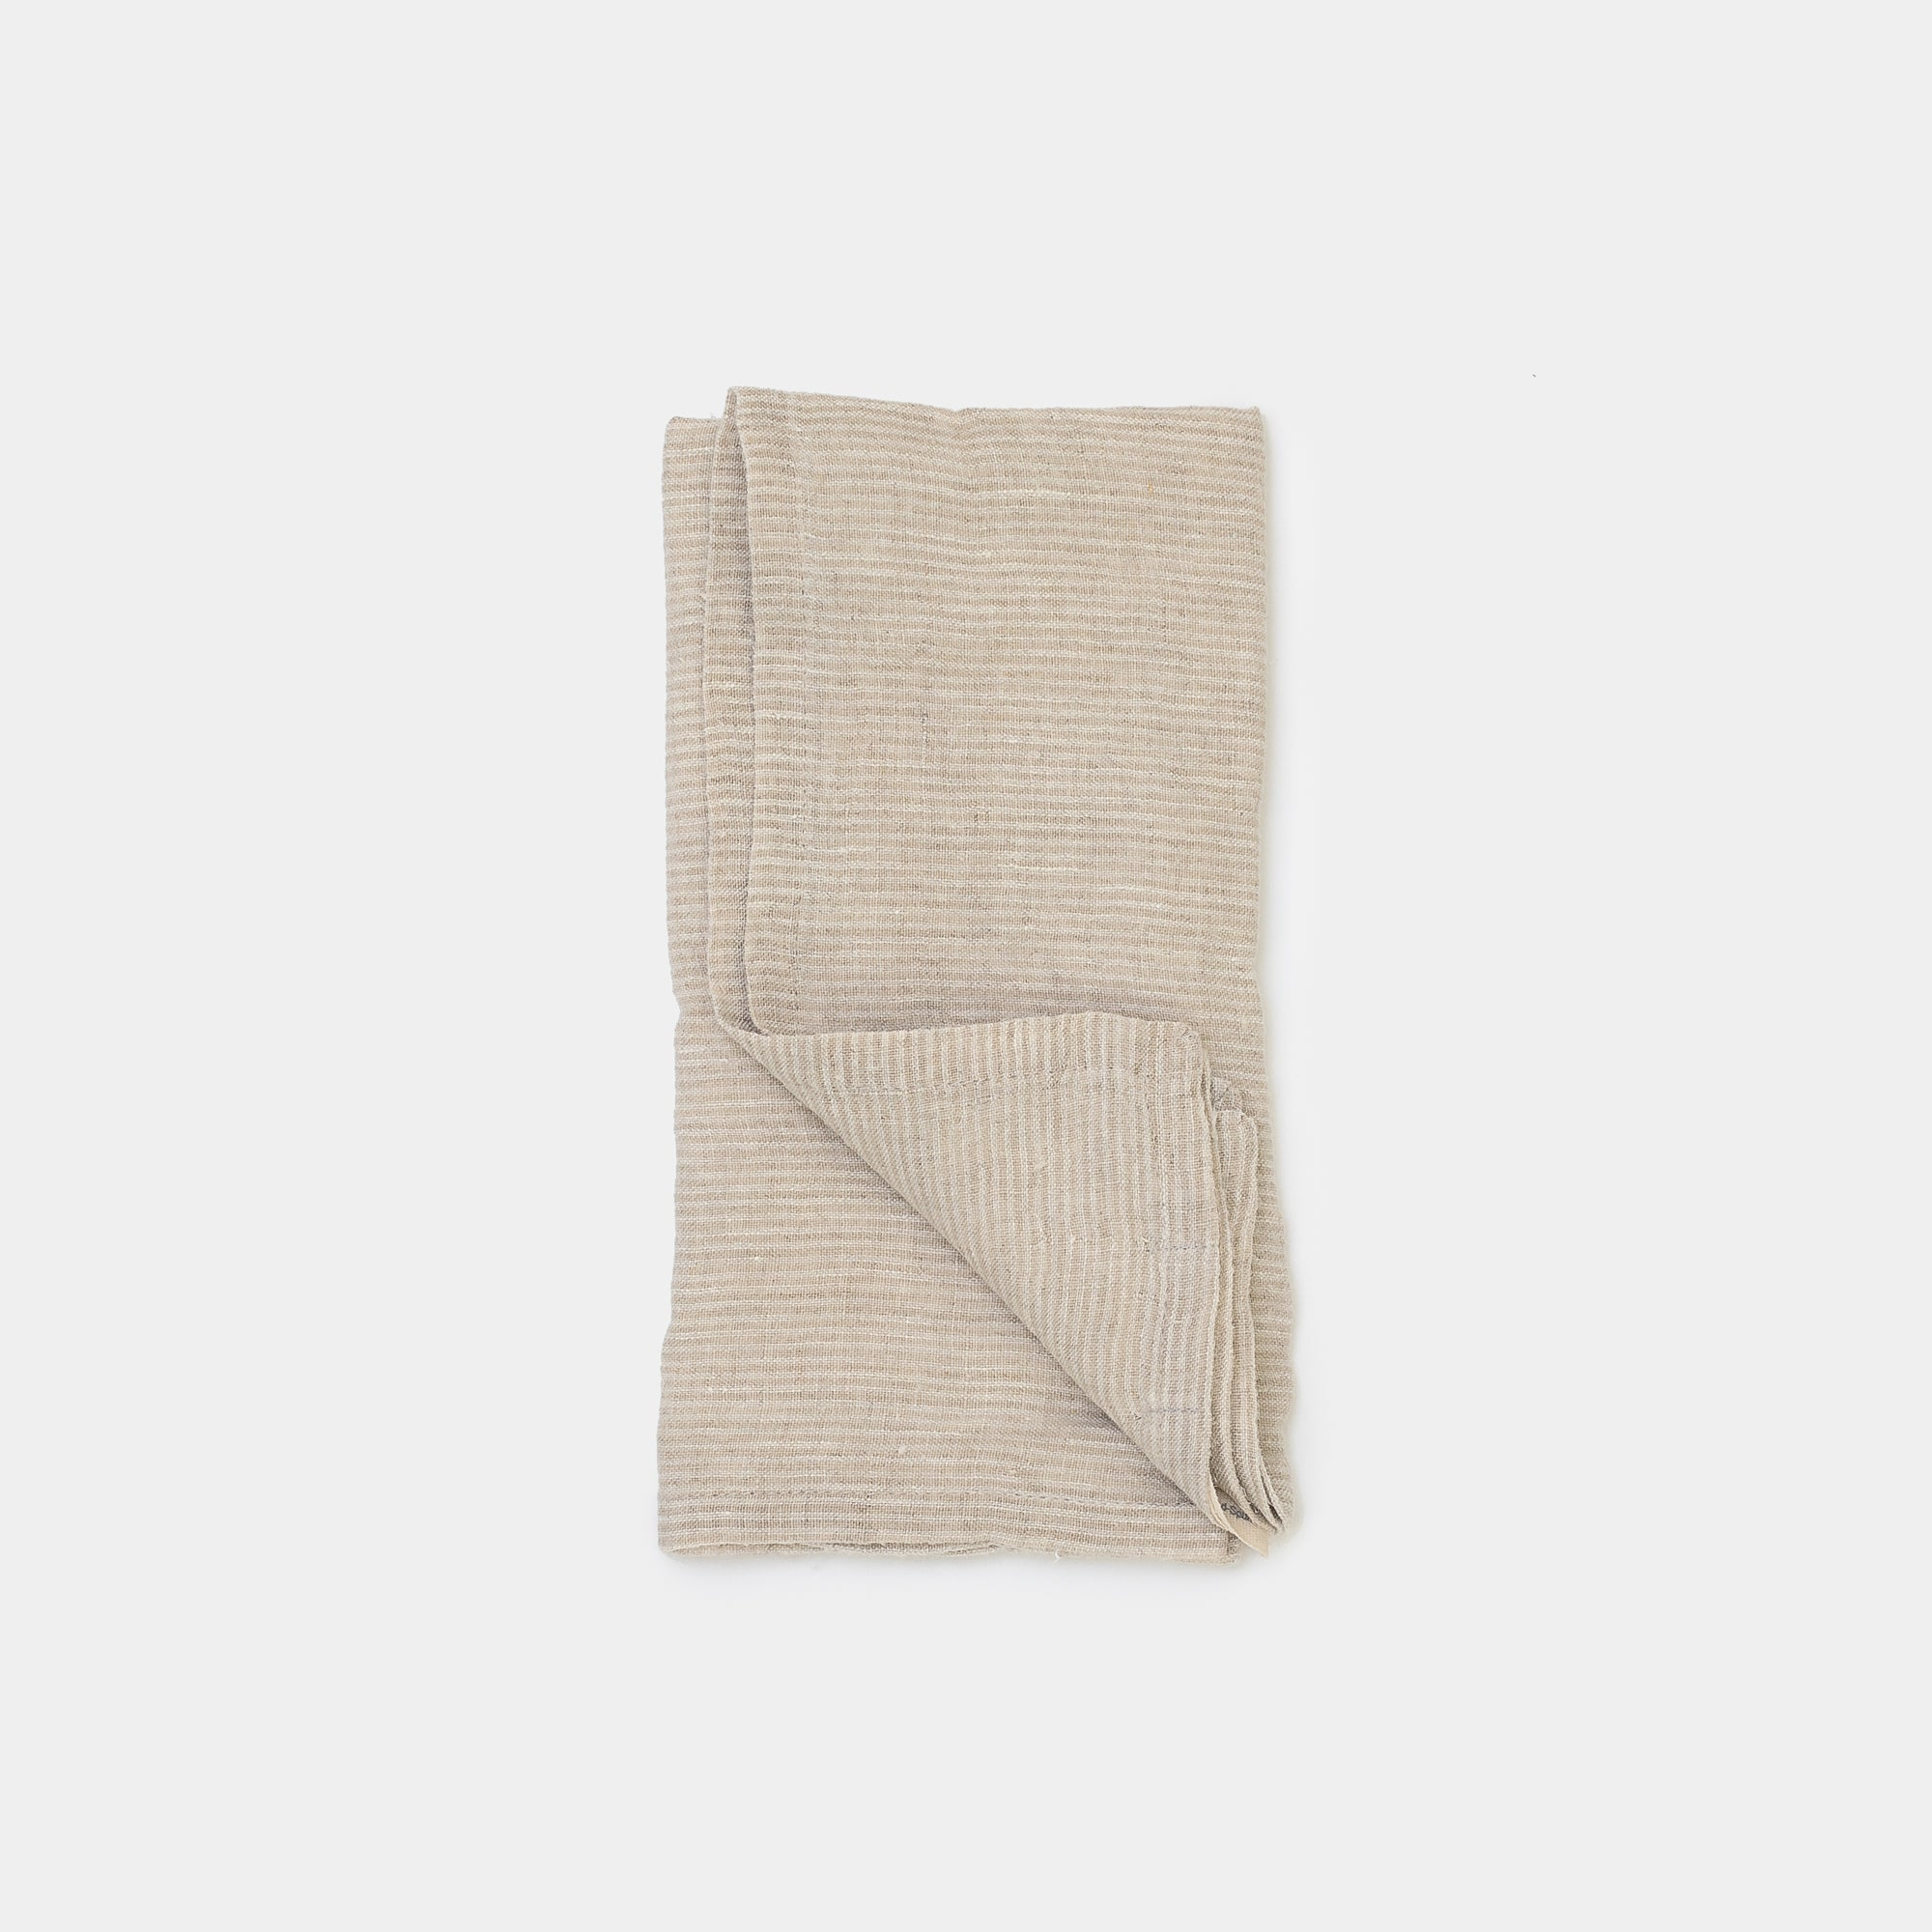 Pico Striped Tea Towel in Ivory - Kitchen & Dining - Table Linens - Napkins – Shoppe Amber Interiors